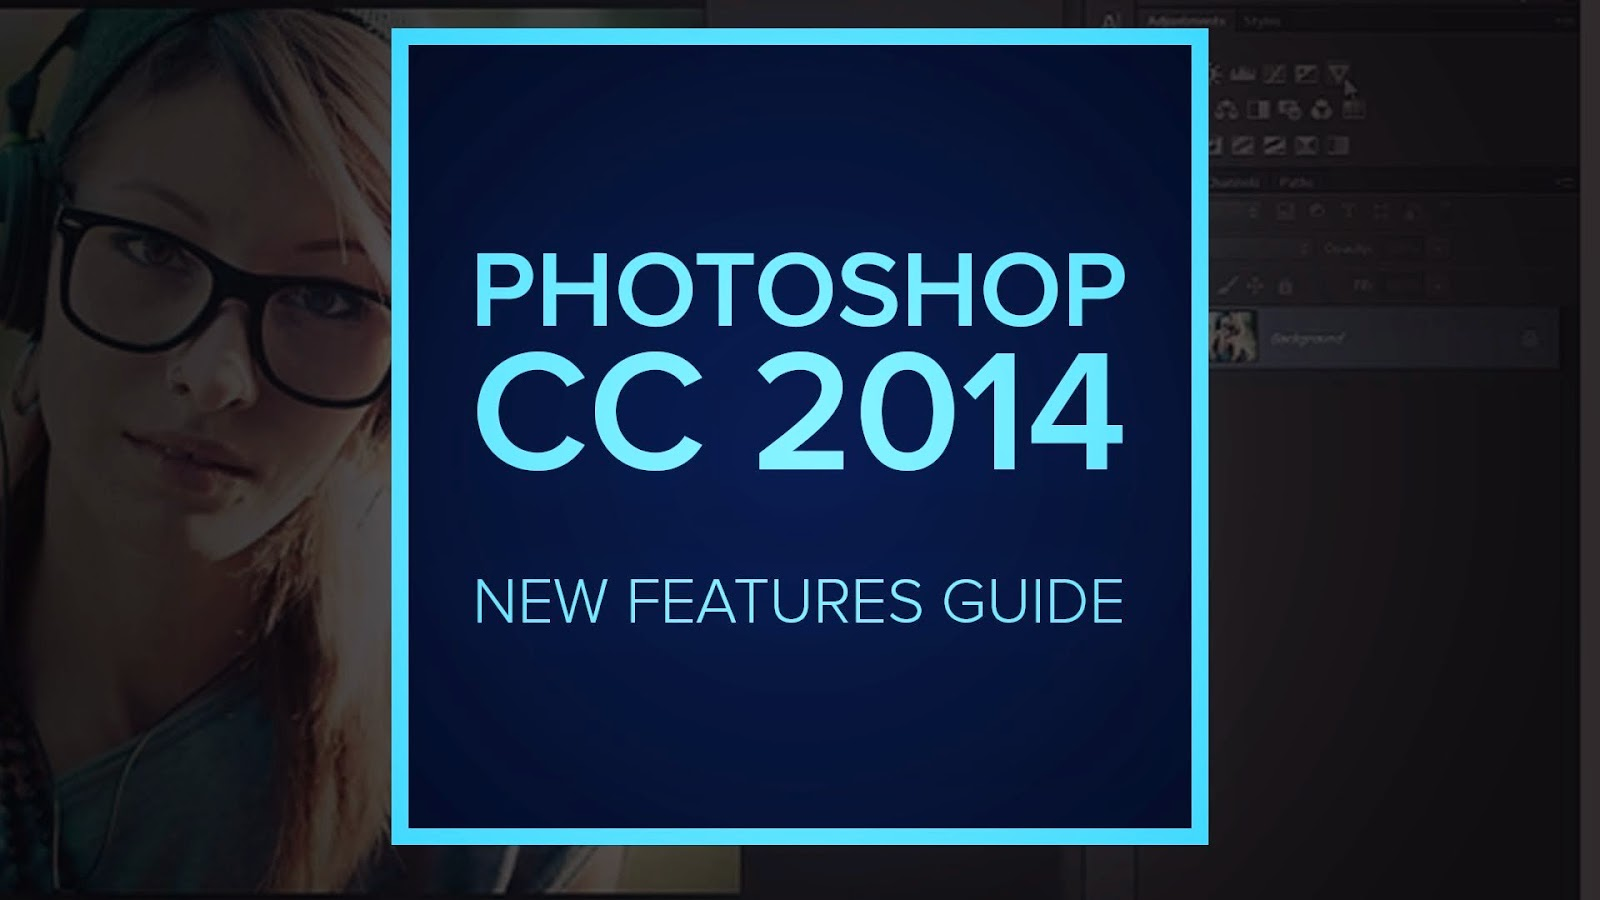 Adobe Photoshop CC 2014 Full Version